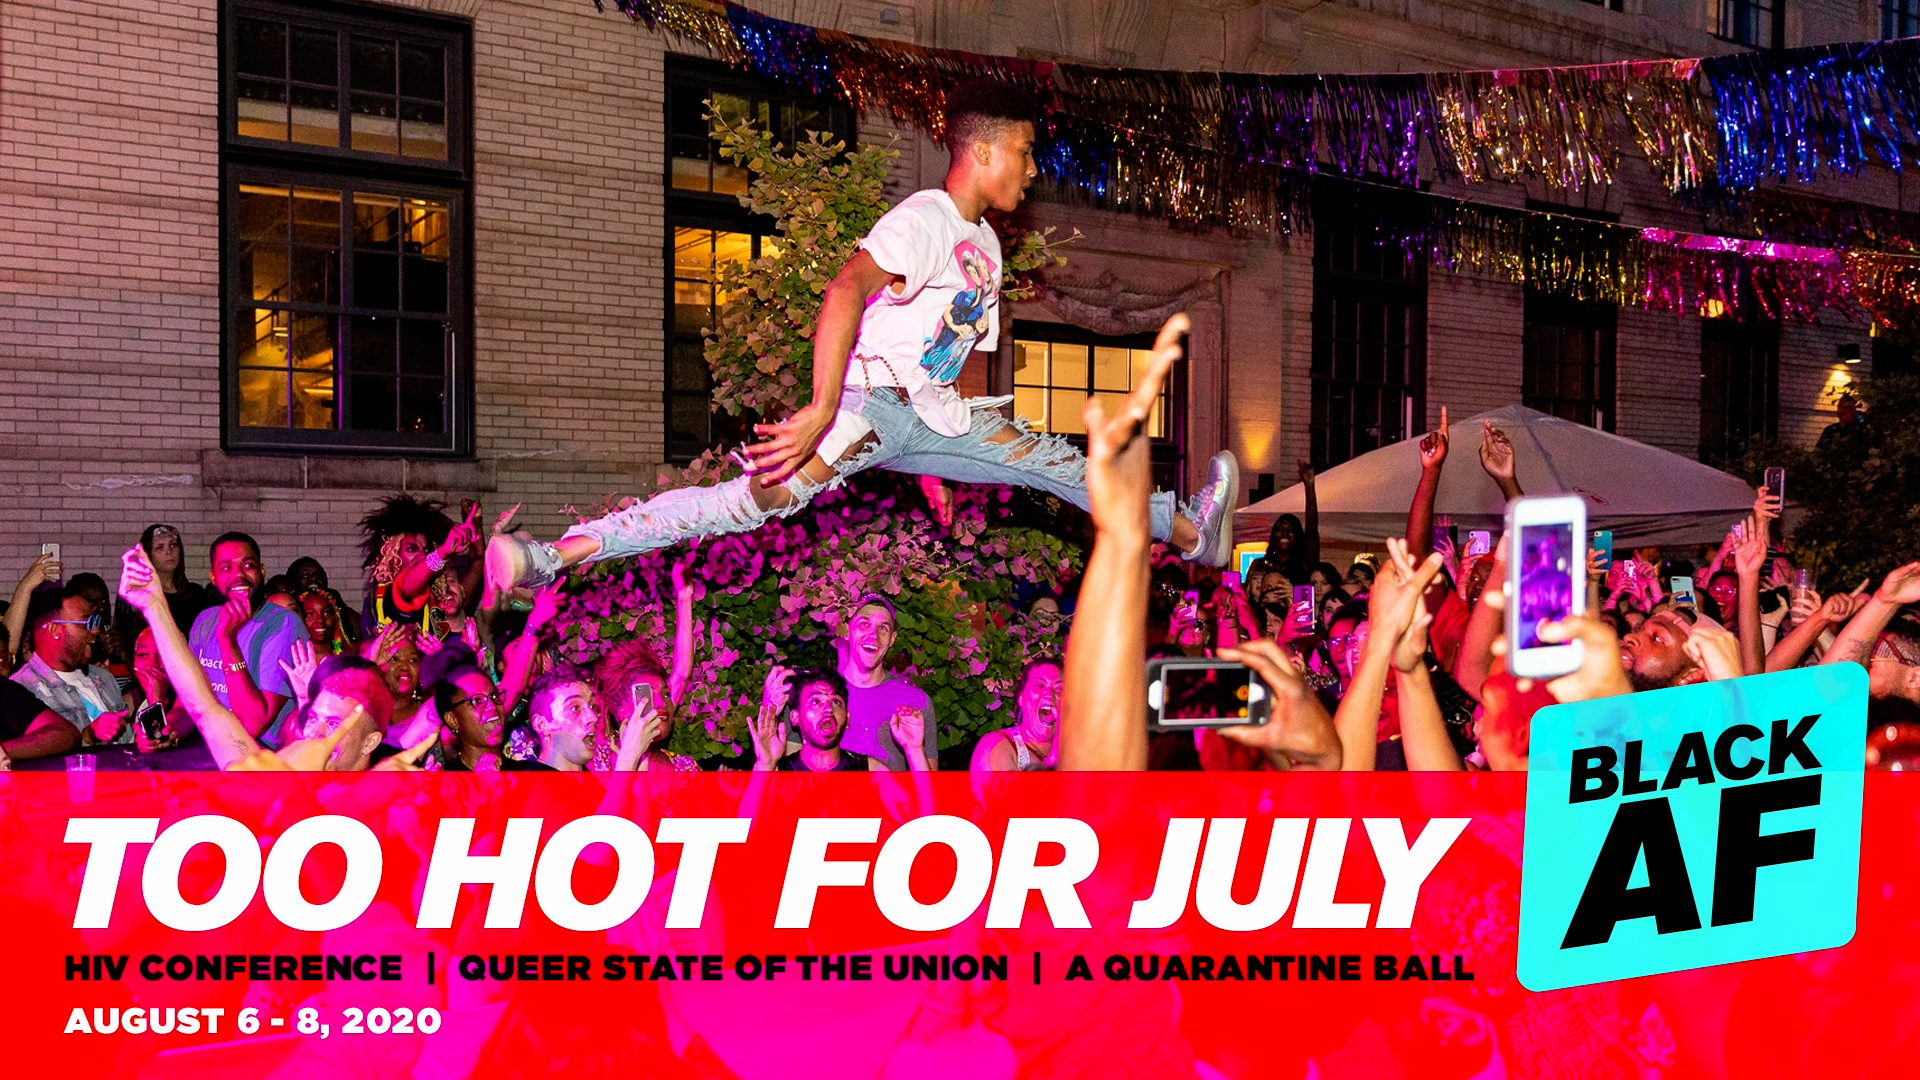 Participants of Too Hot for July in a previous year enjoy festivities and music. A crowd gathers raising phones in the air while a young man leaps over them.